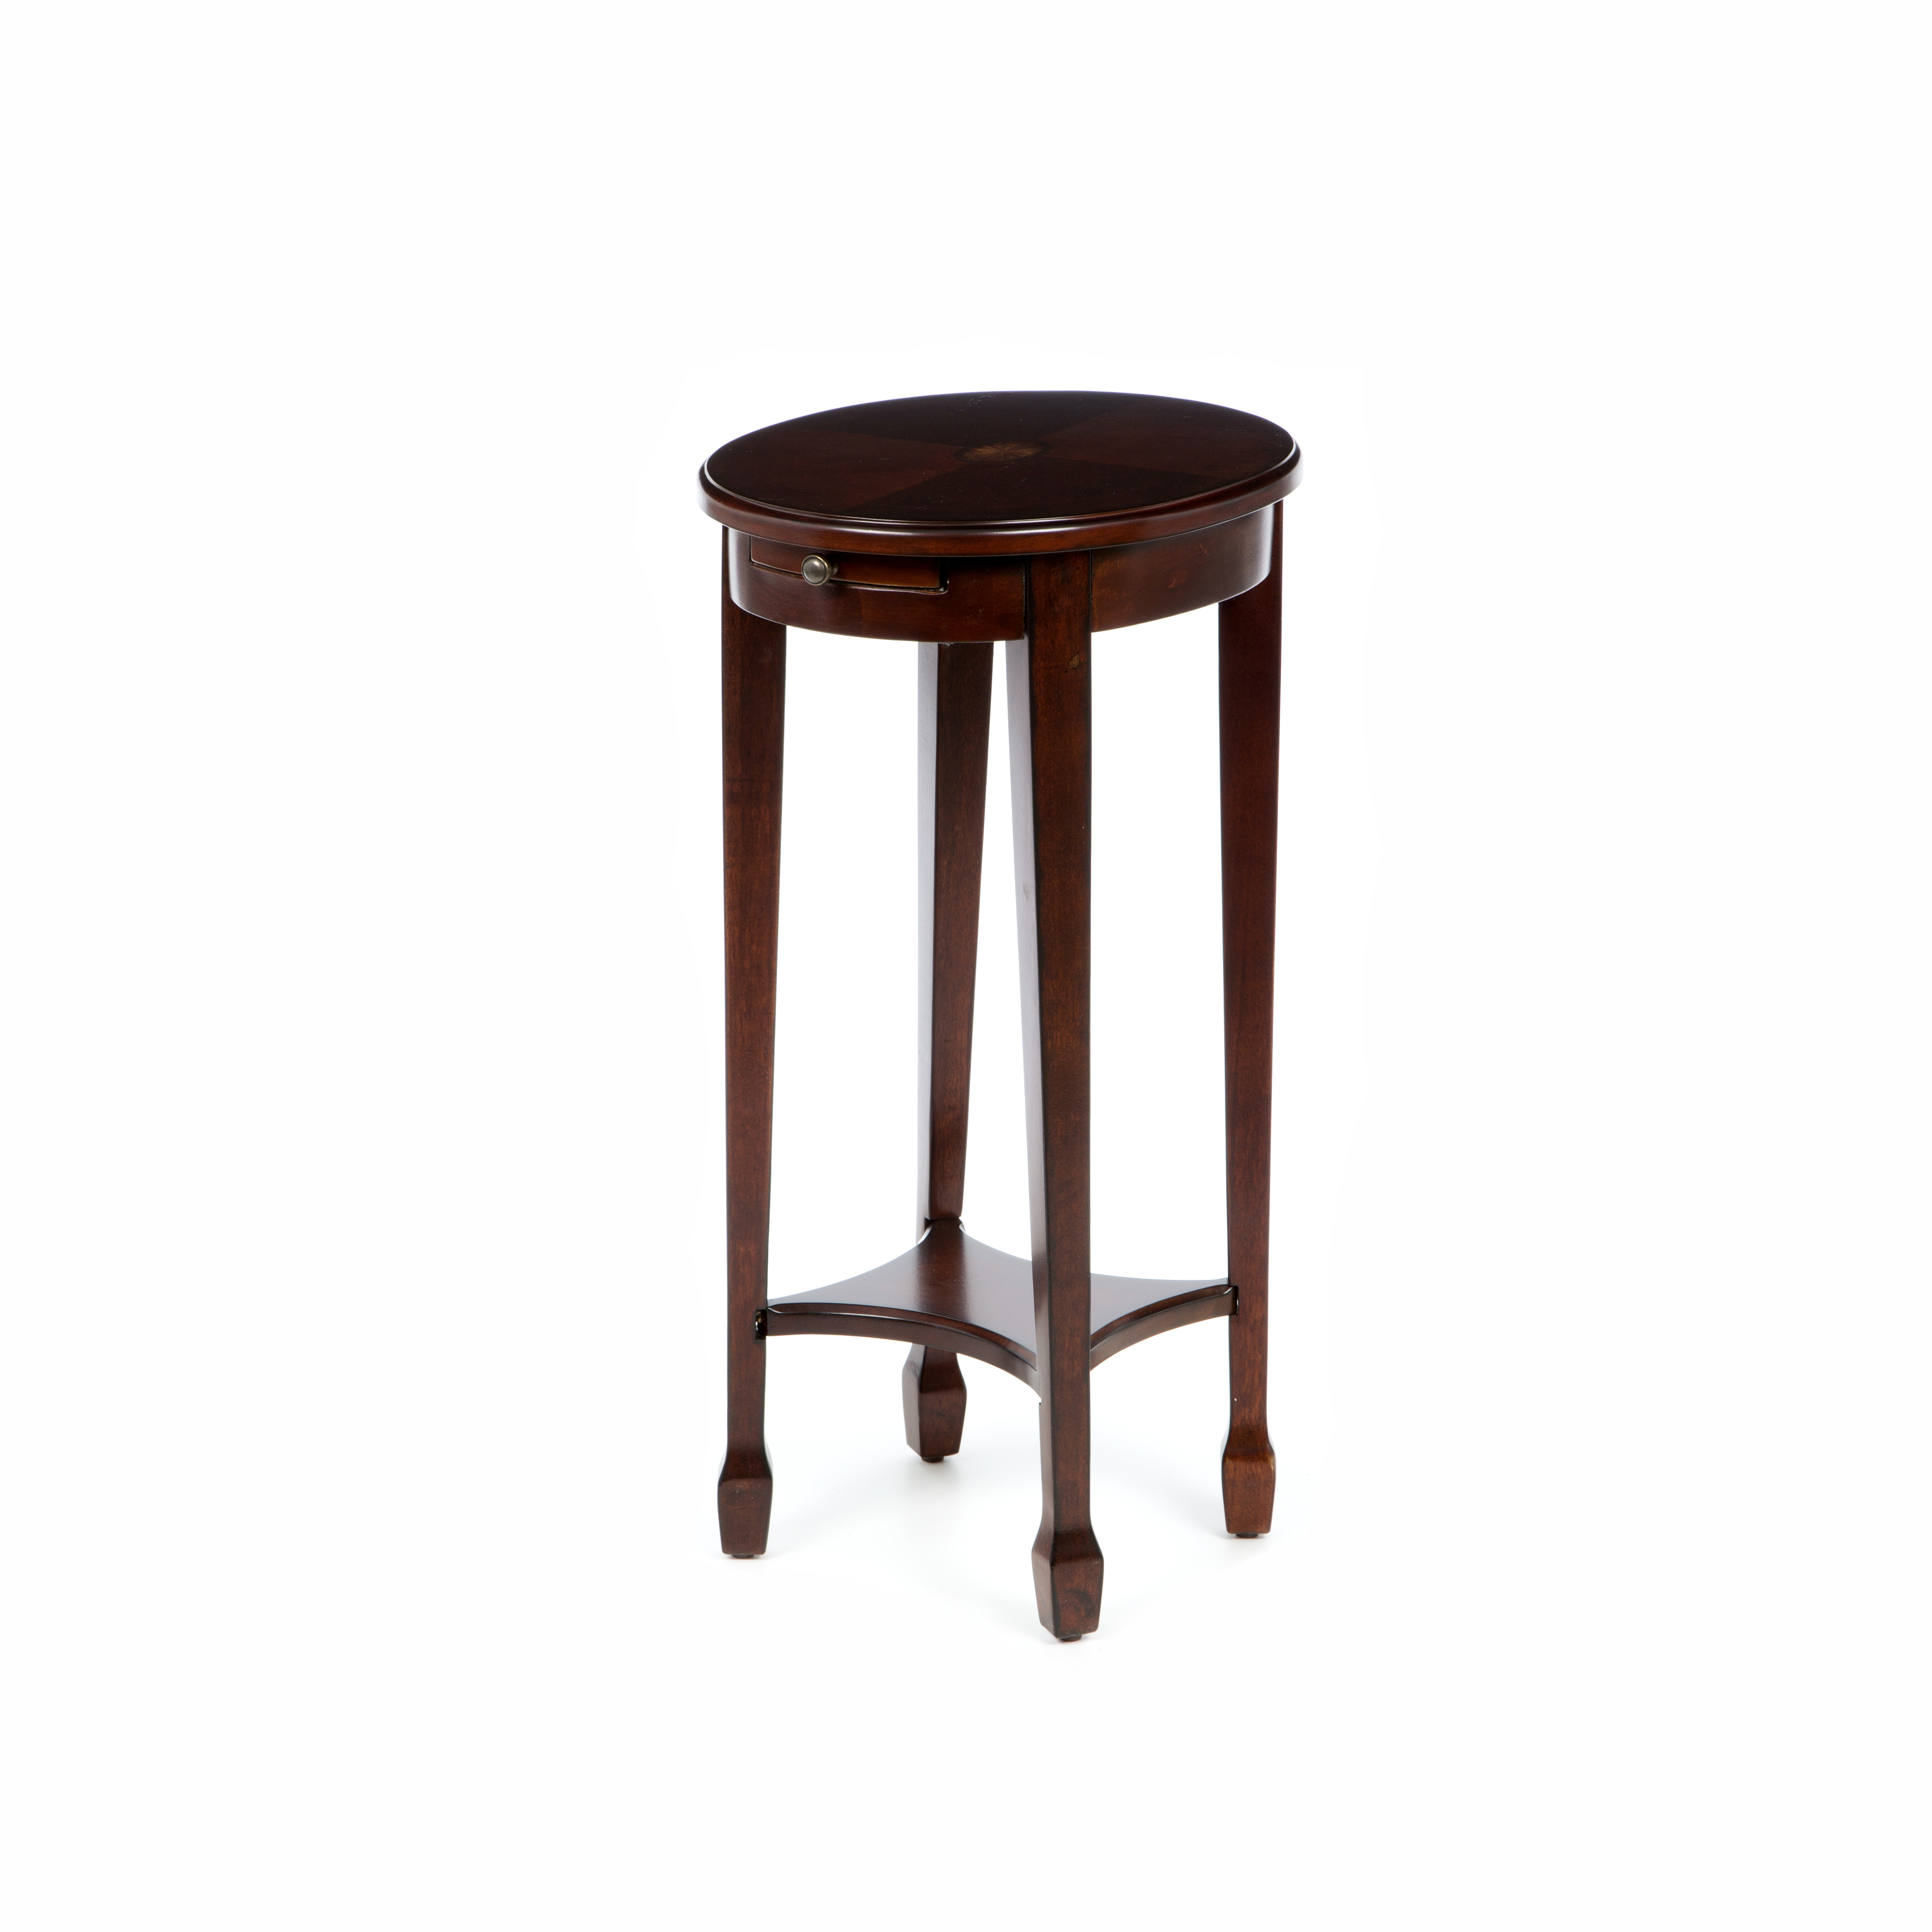 charlton home tipton accent end table with shelf reviews round tables blue and white umbrella pottery barn industrial coffee knotty pine desk tablecloth aluminum small wingback